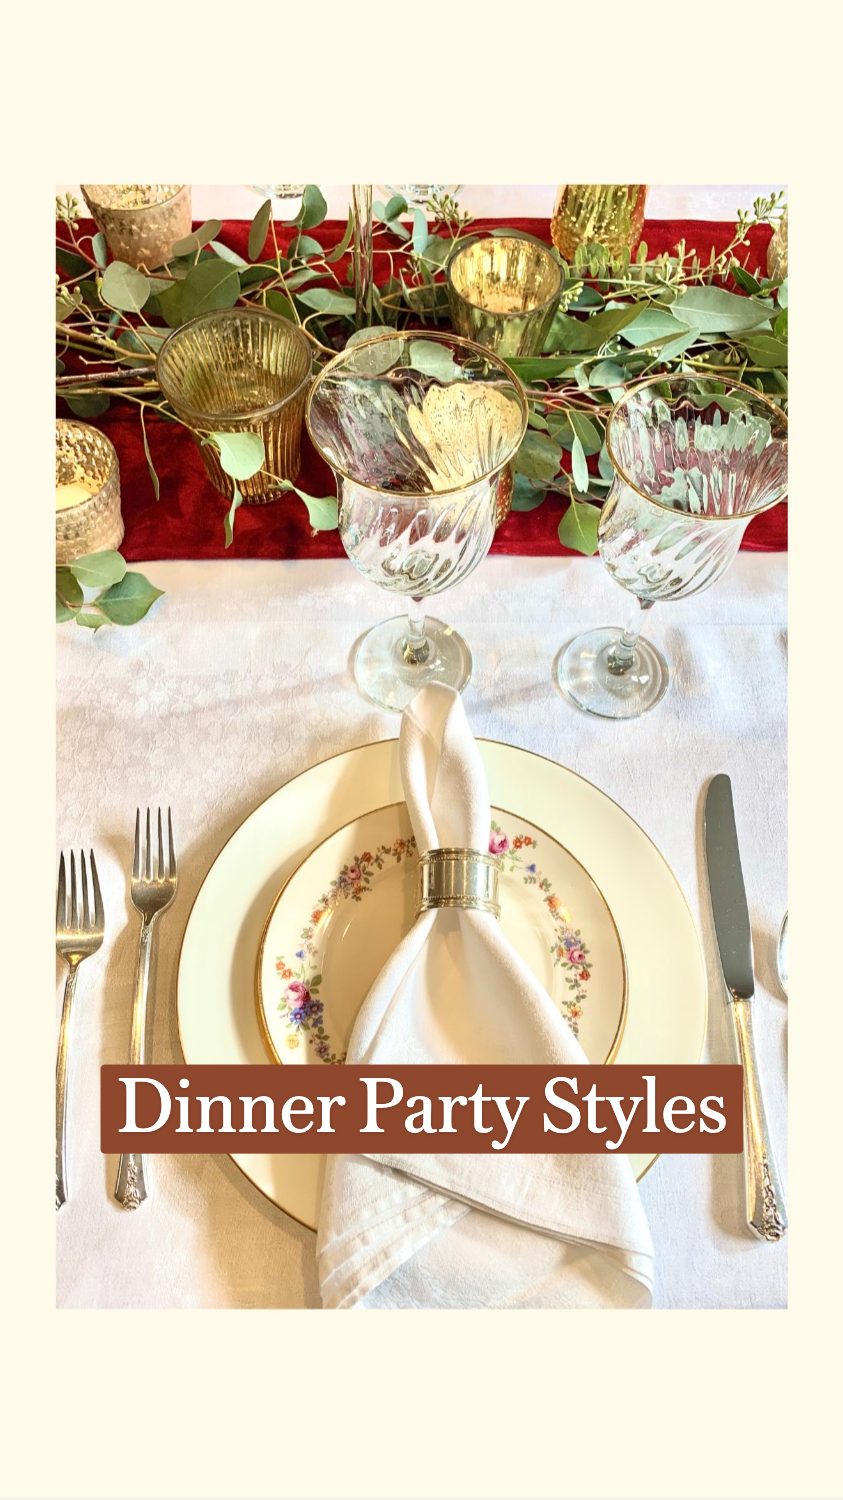 Dinner Party Styles